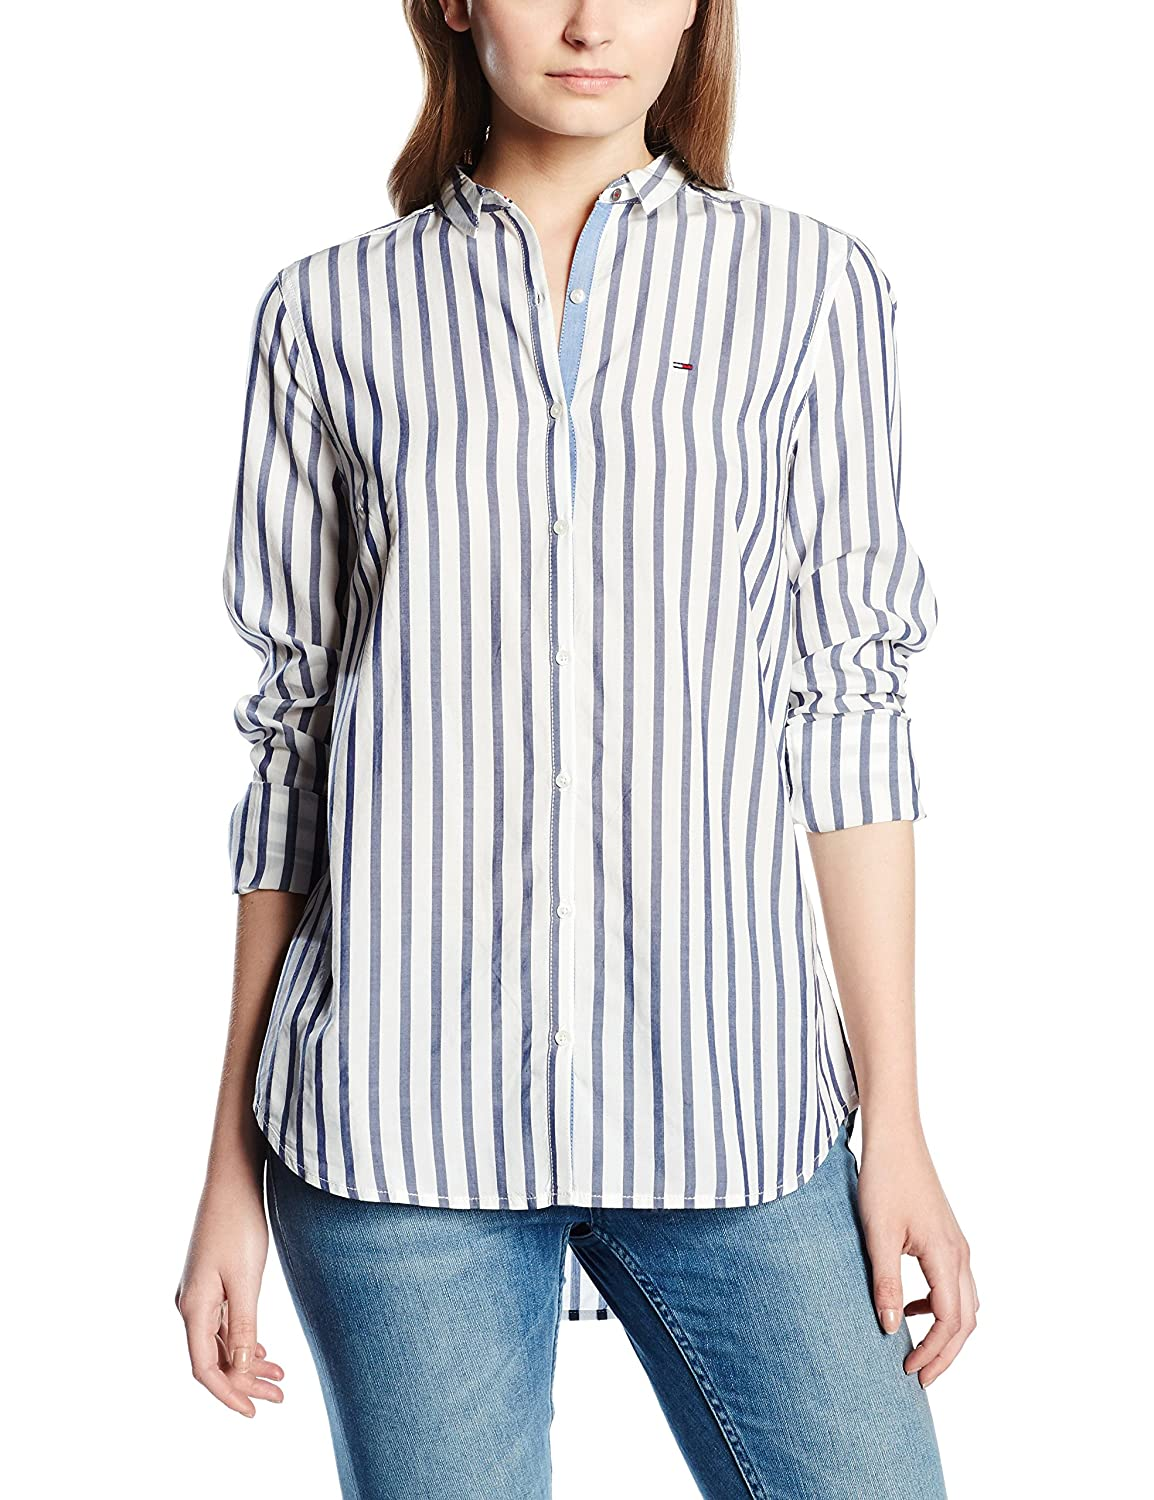 Hilfiger Denim Damen Bluse Thdw Basic Stripe Shirt L/s 11